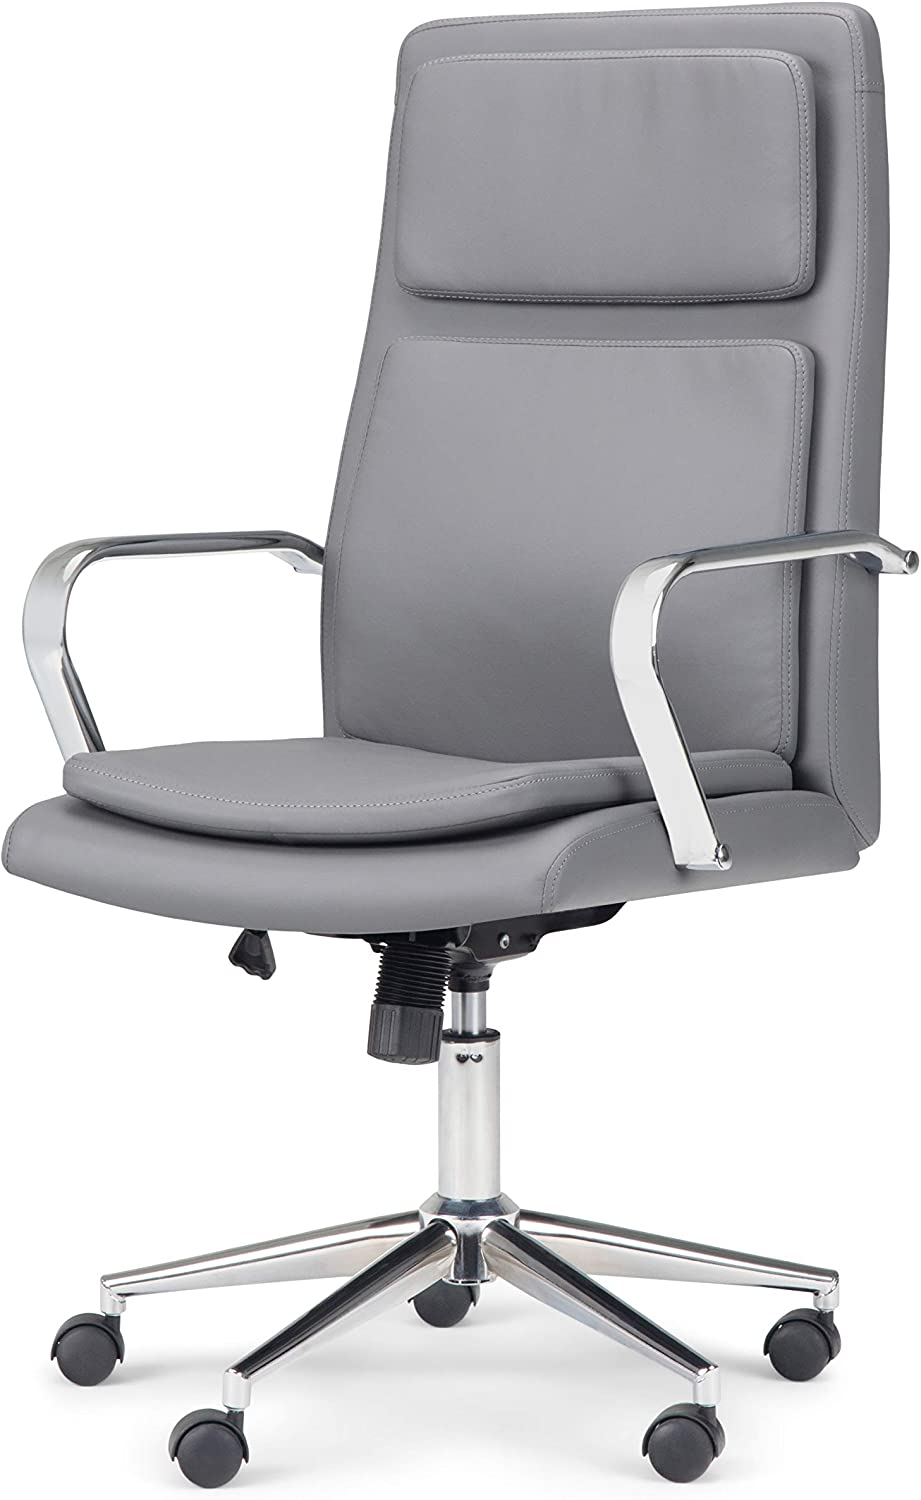 Simpli Home Swanson Swivel Adjustable Executive Computer Office Chair in Stone Grey